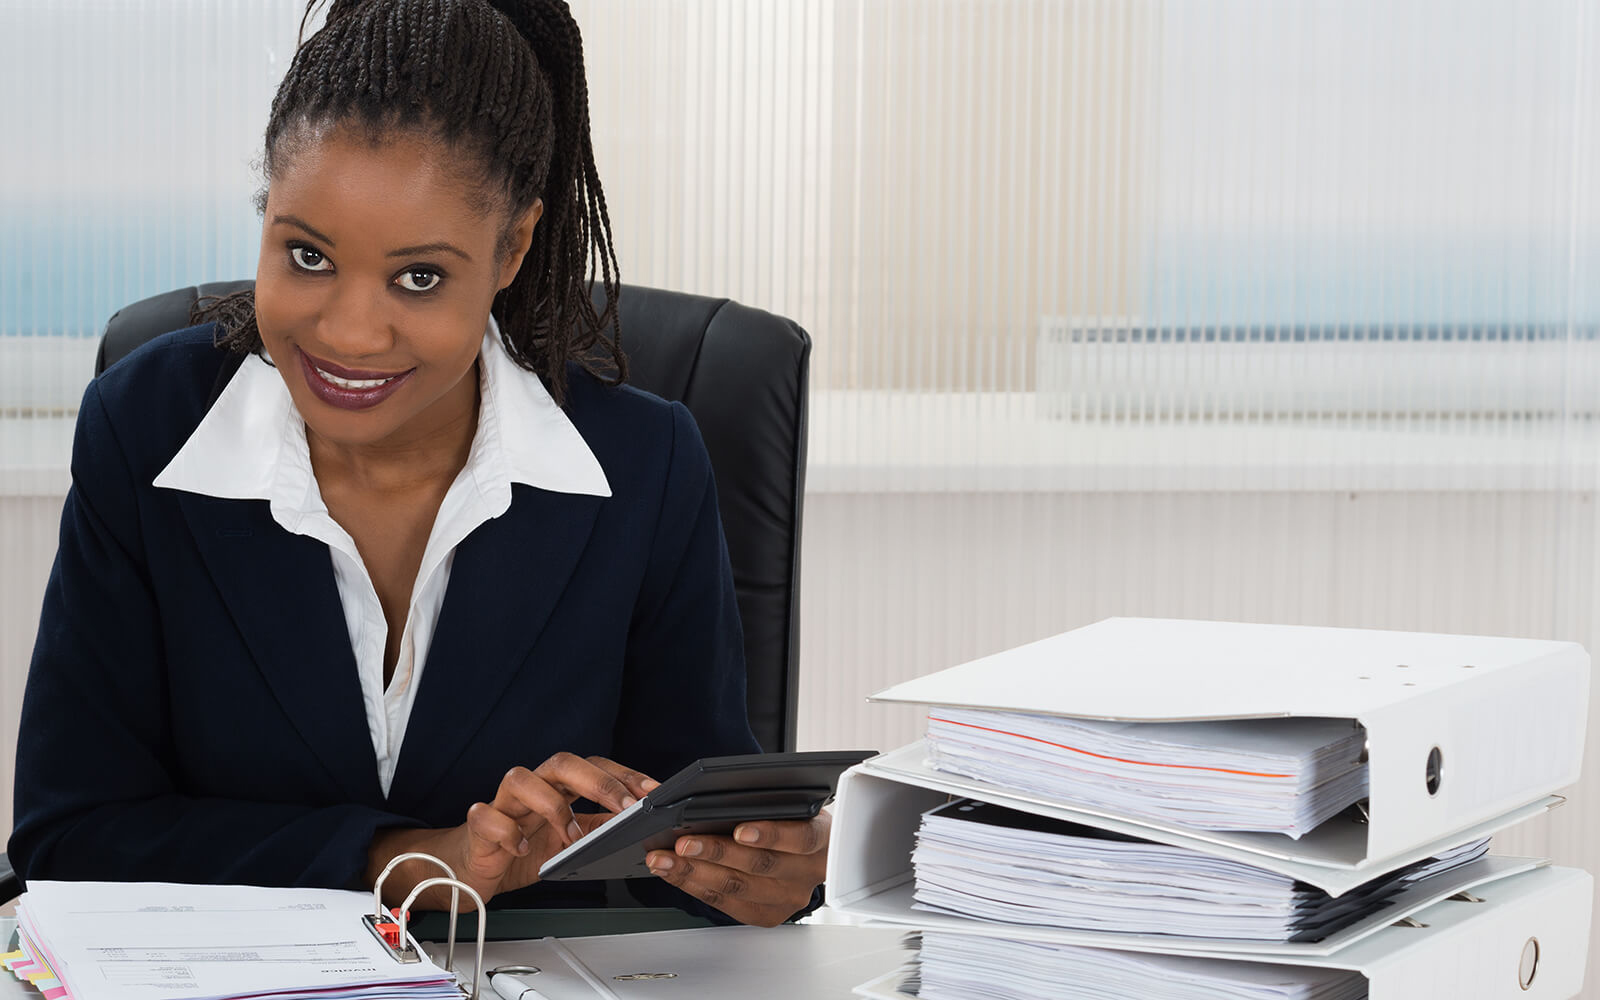 Accountant working at her desk